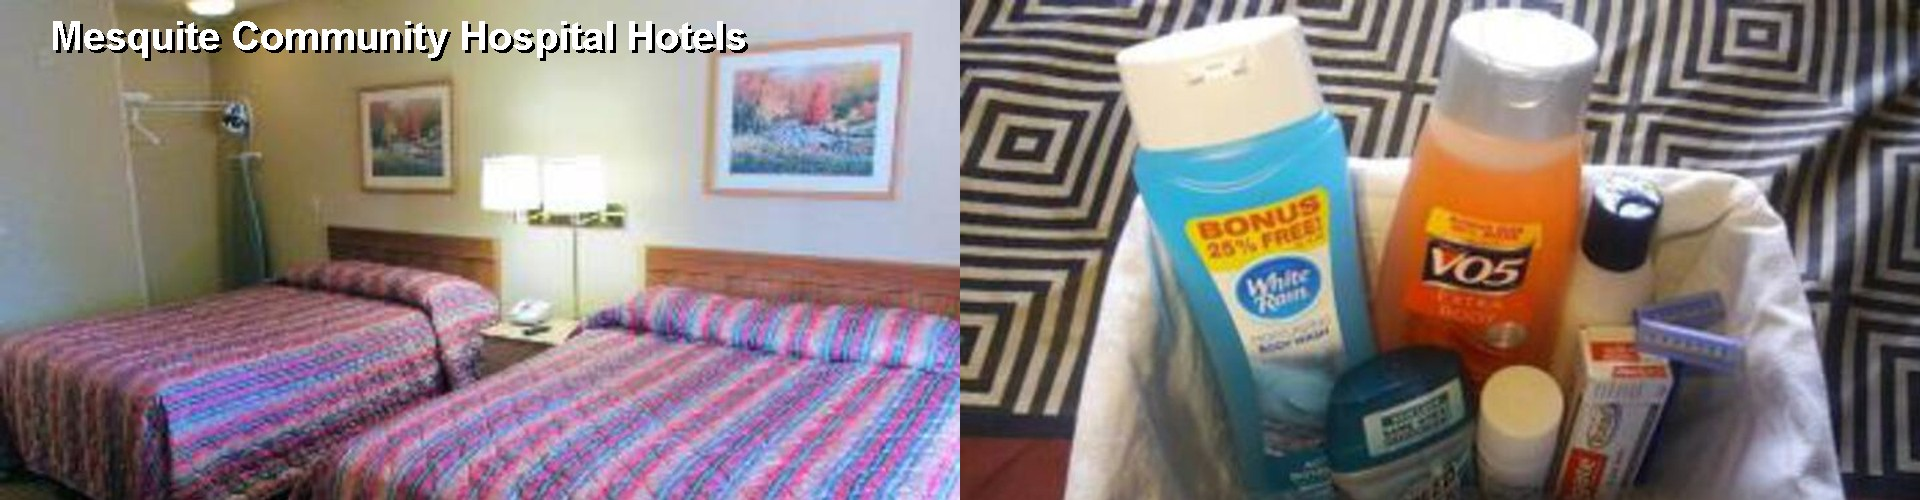 4 Best Hotels near Mesquite Community Hospital